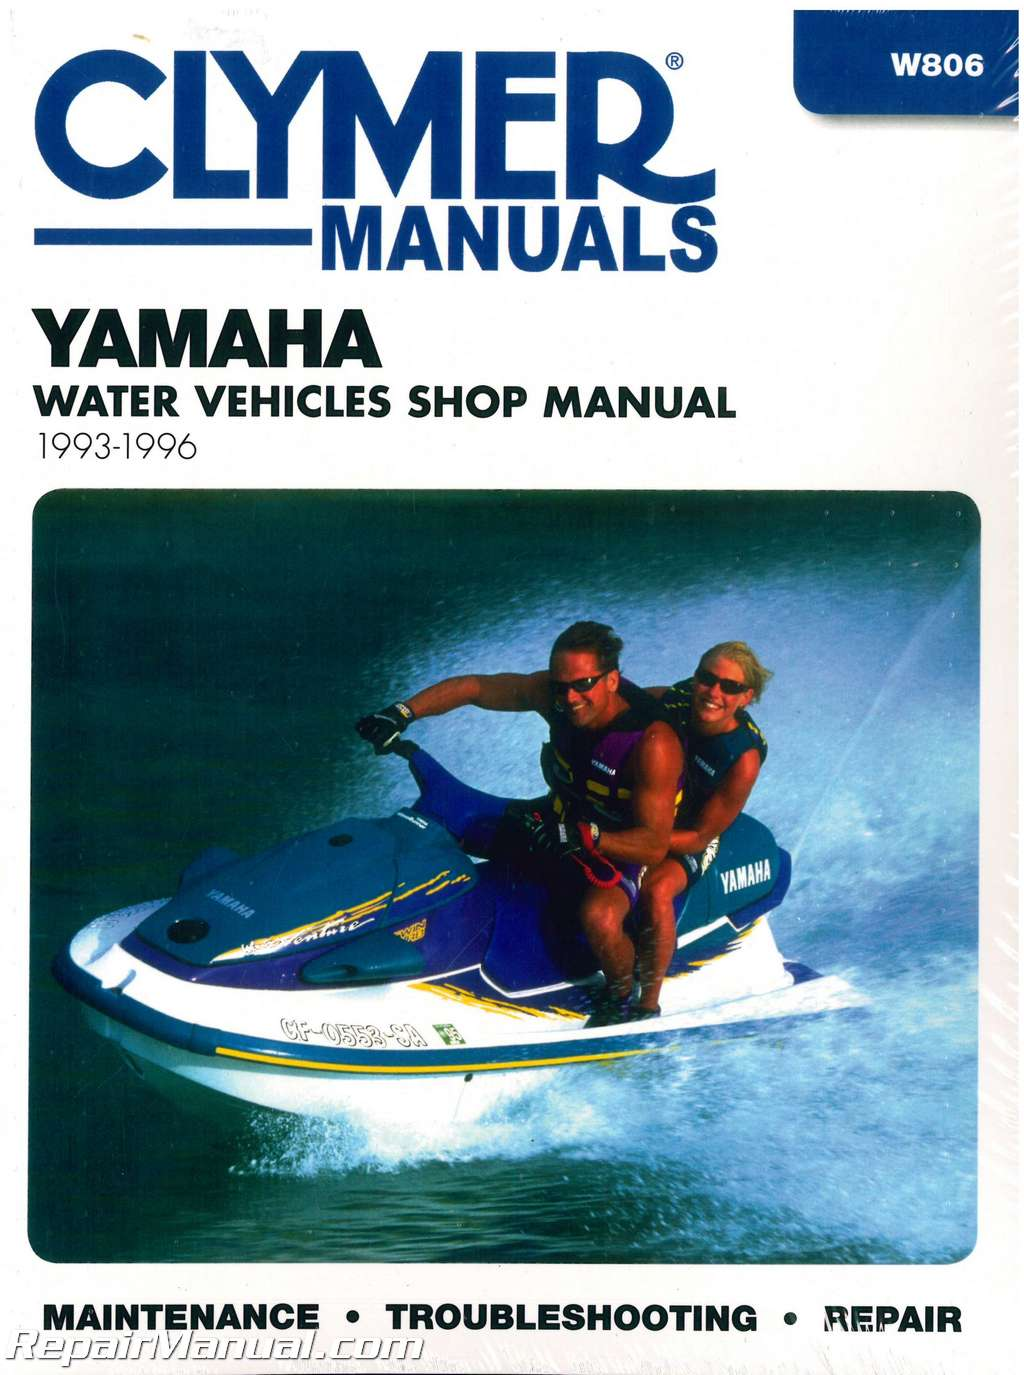 1993 1996 Yamaha Waverunner Clymer Personal Watercraft